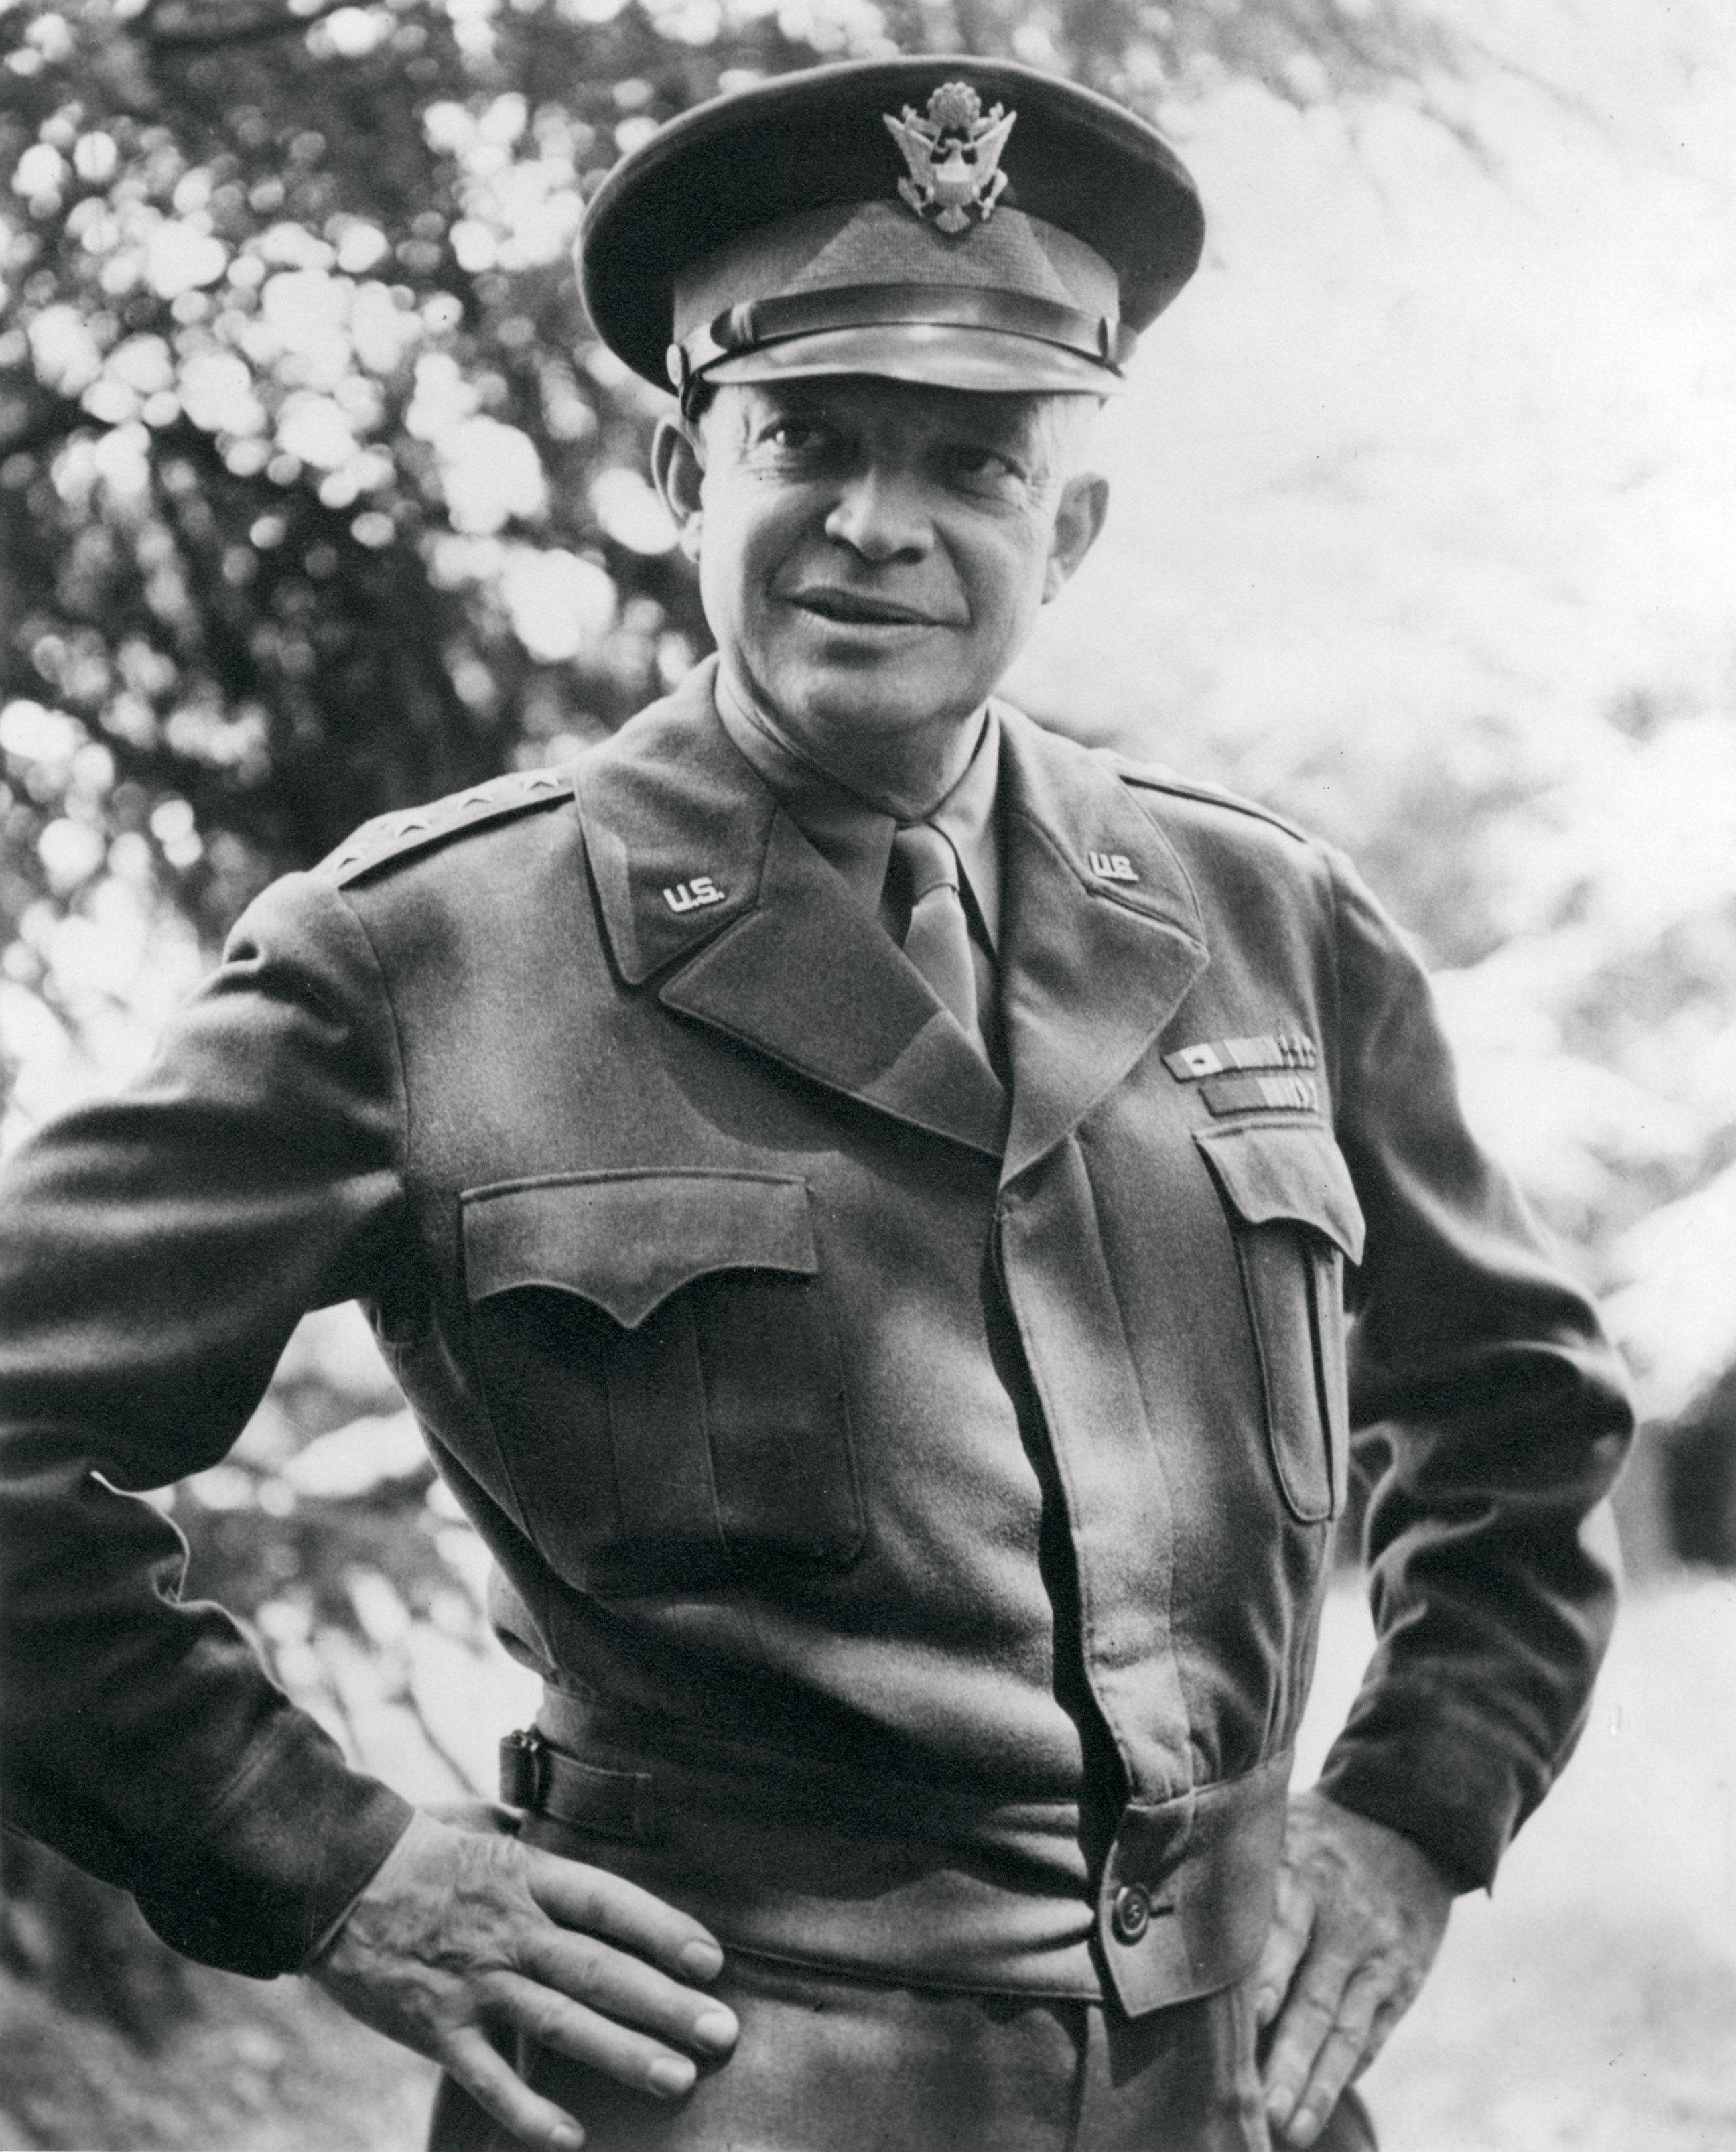 Dwight D. Eisenhower Presidential Library and Museum, National Archives (63-92)